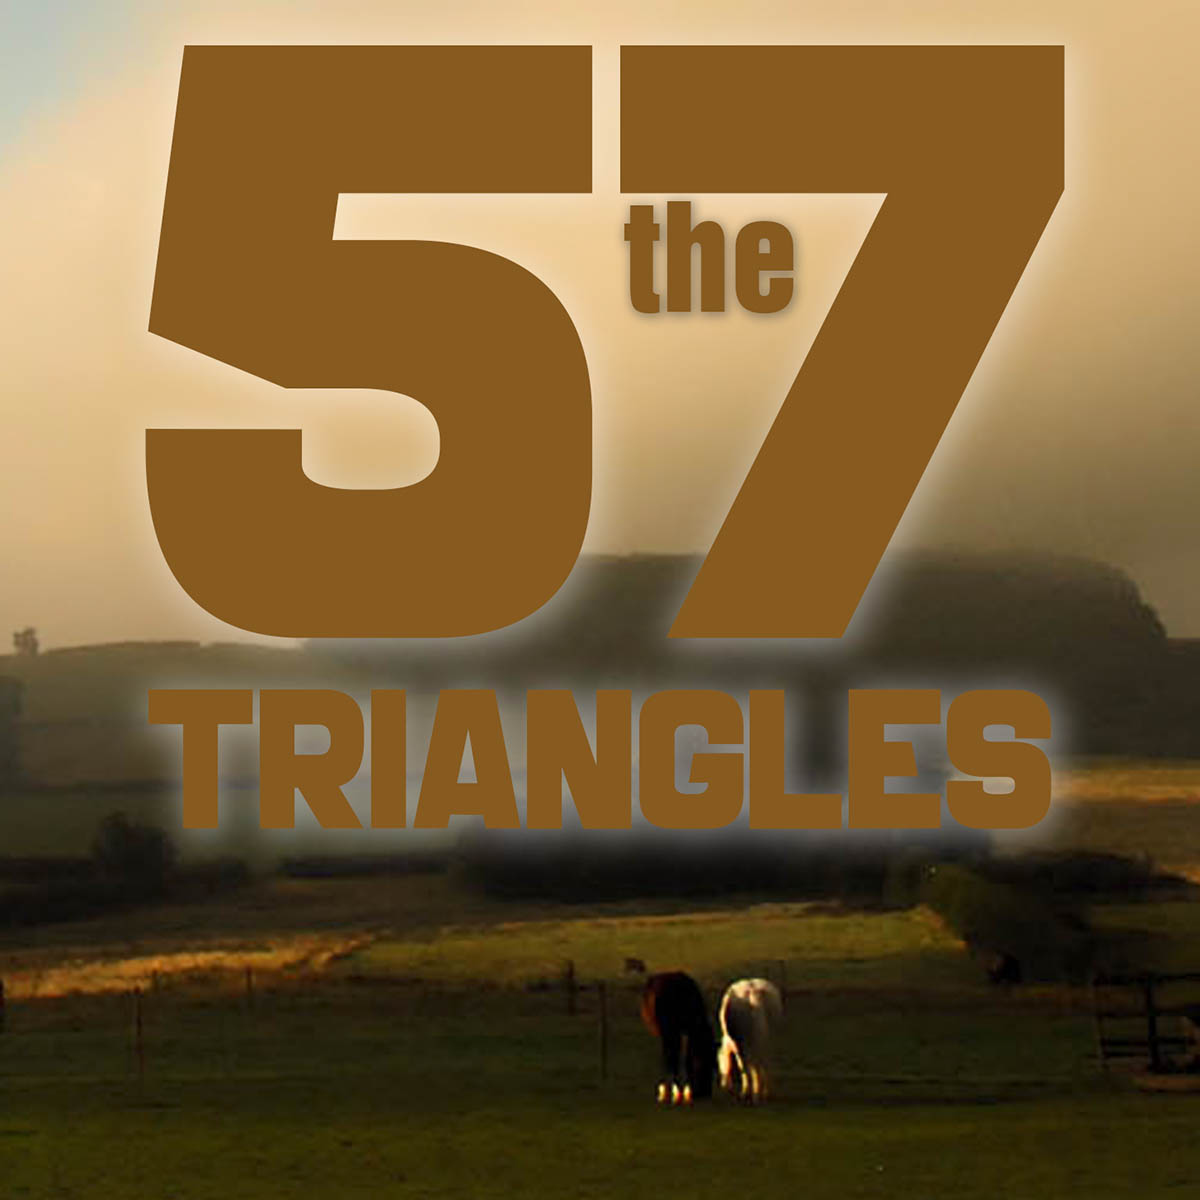 The 57 Triangles